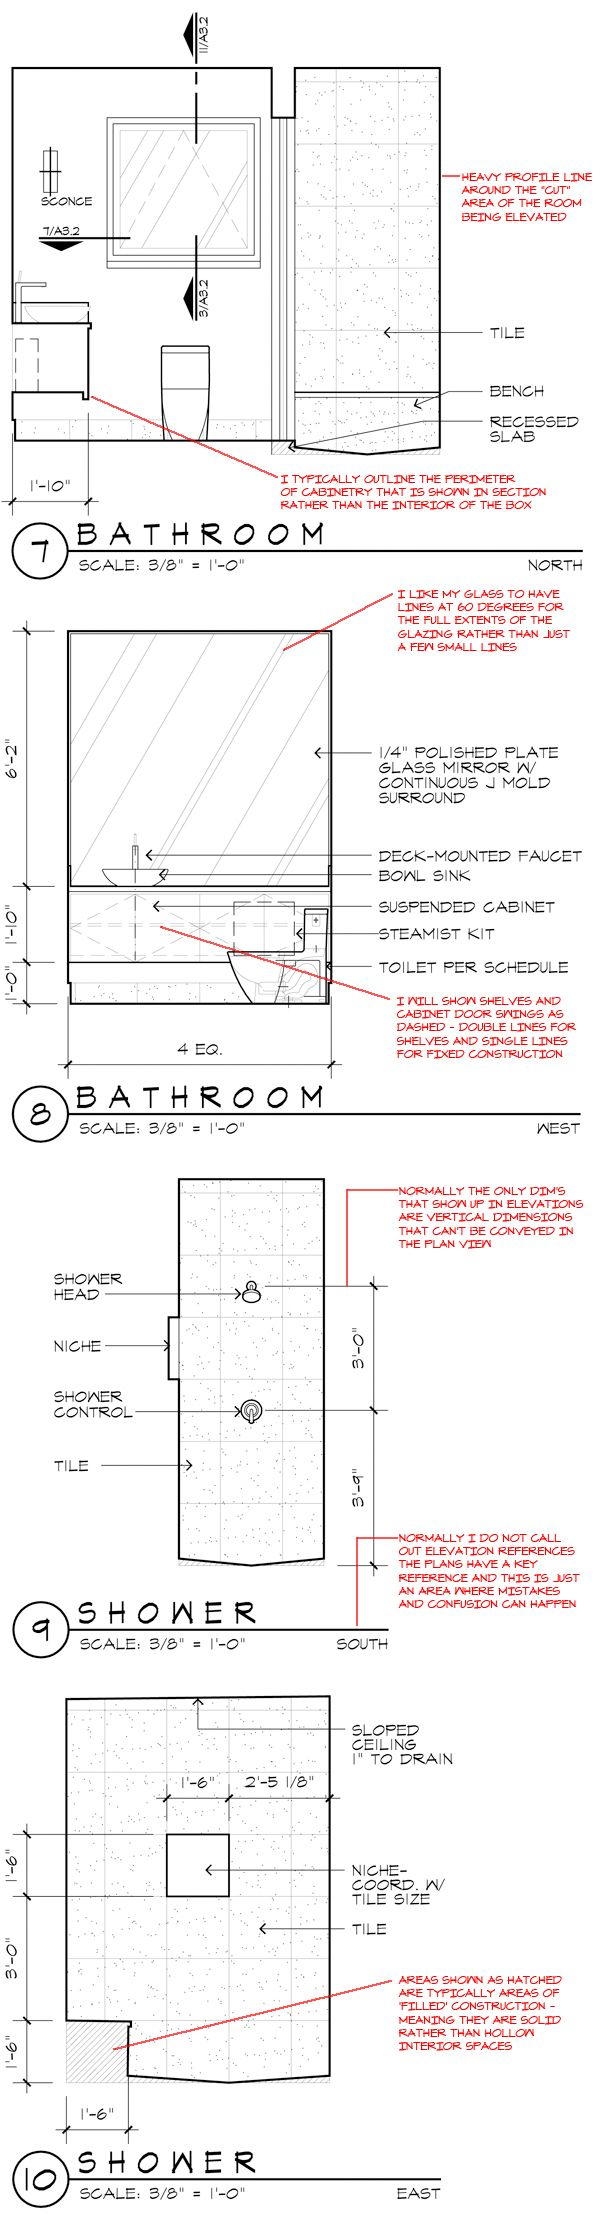 Bathroom drawings design - Interior Elevations Architectural Graphics Standards Construction Drawing